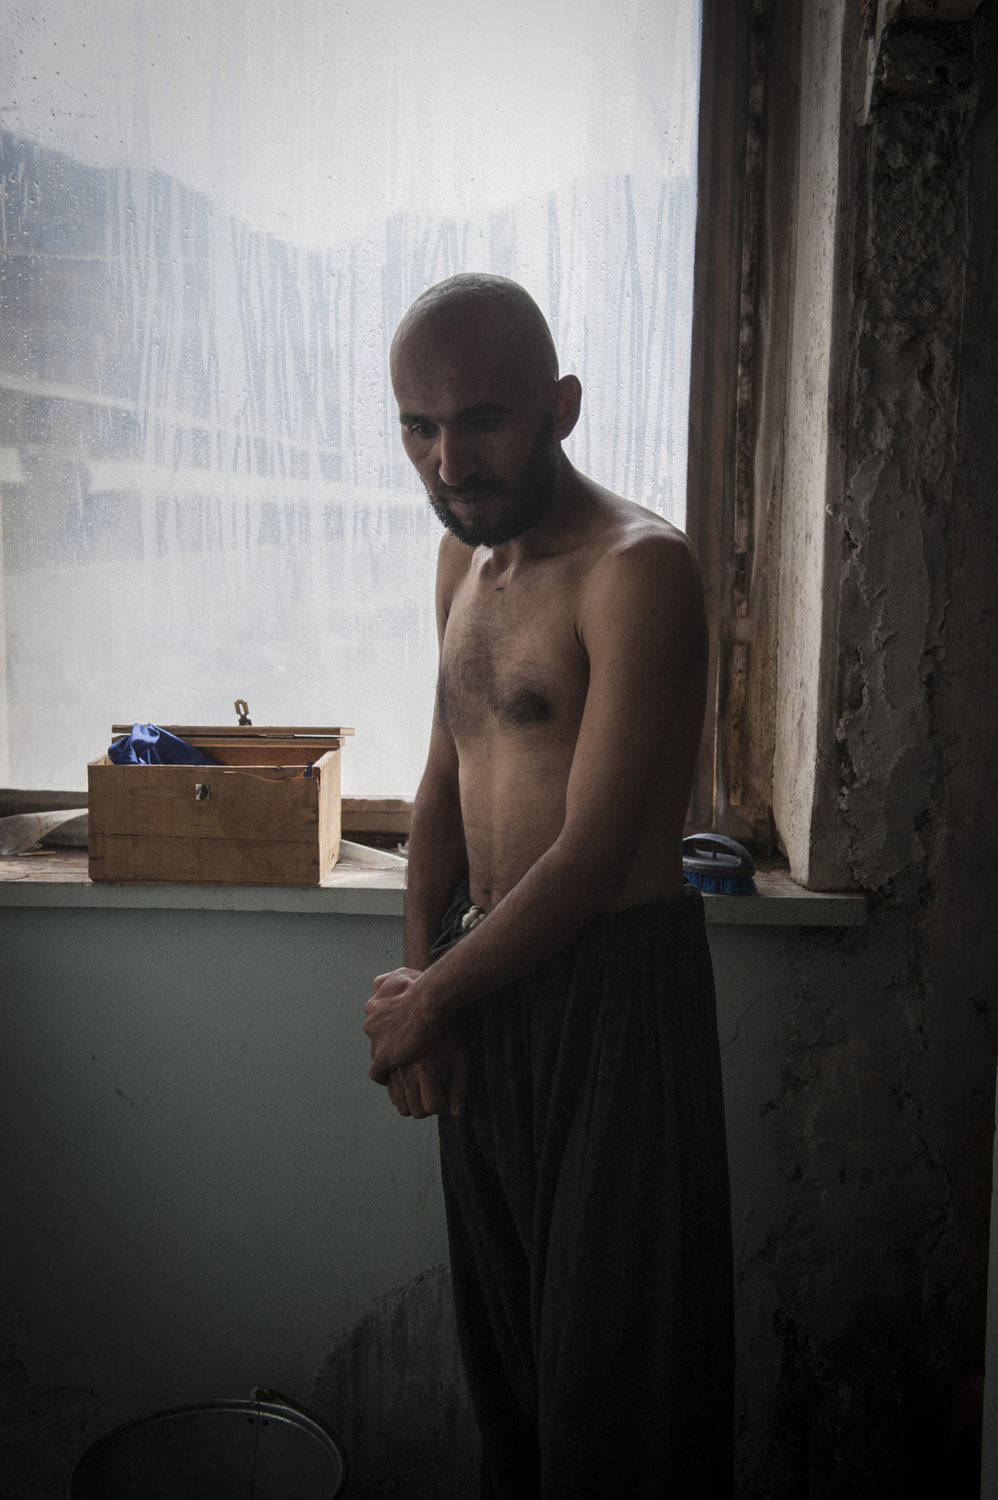 Abdullah Wahid enters the Jangaland rehabilitation clinic in Kabul, Afghanistan. The admittance procedure involves shaving the head as a sign of a new commitment.